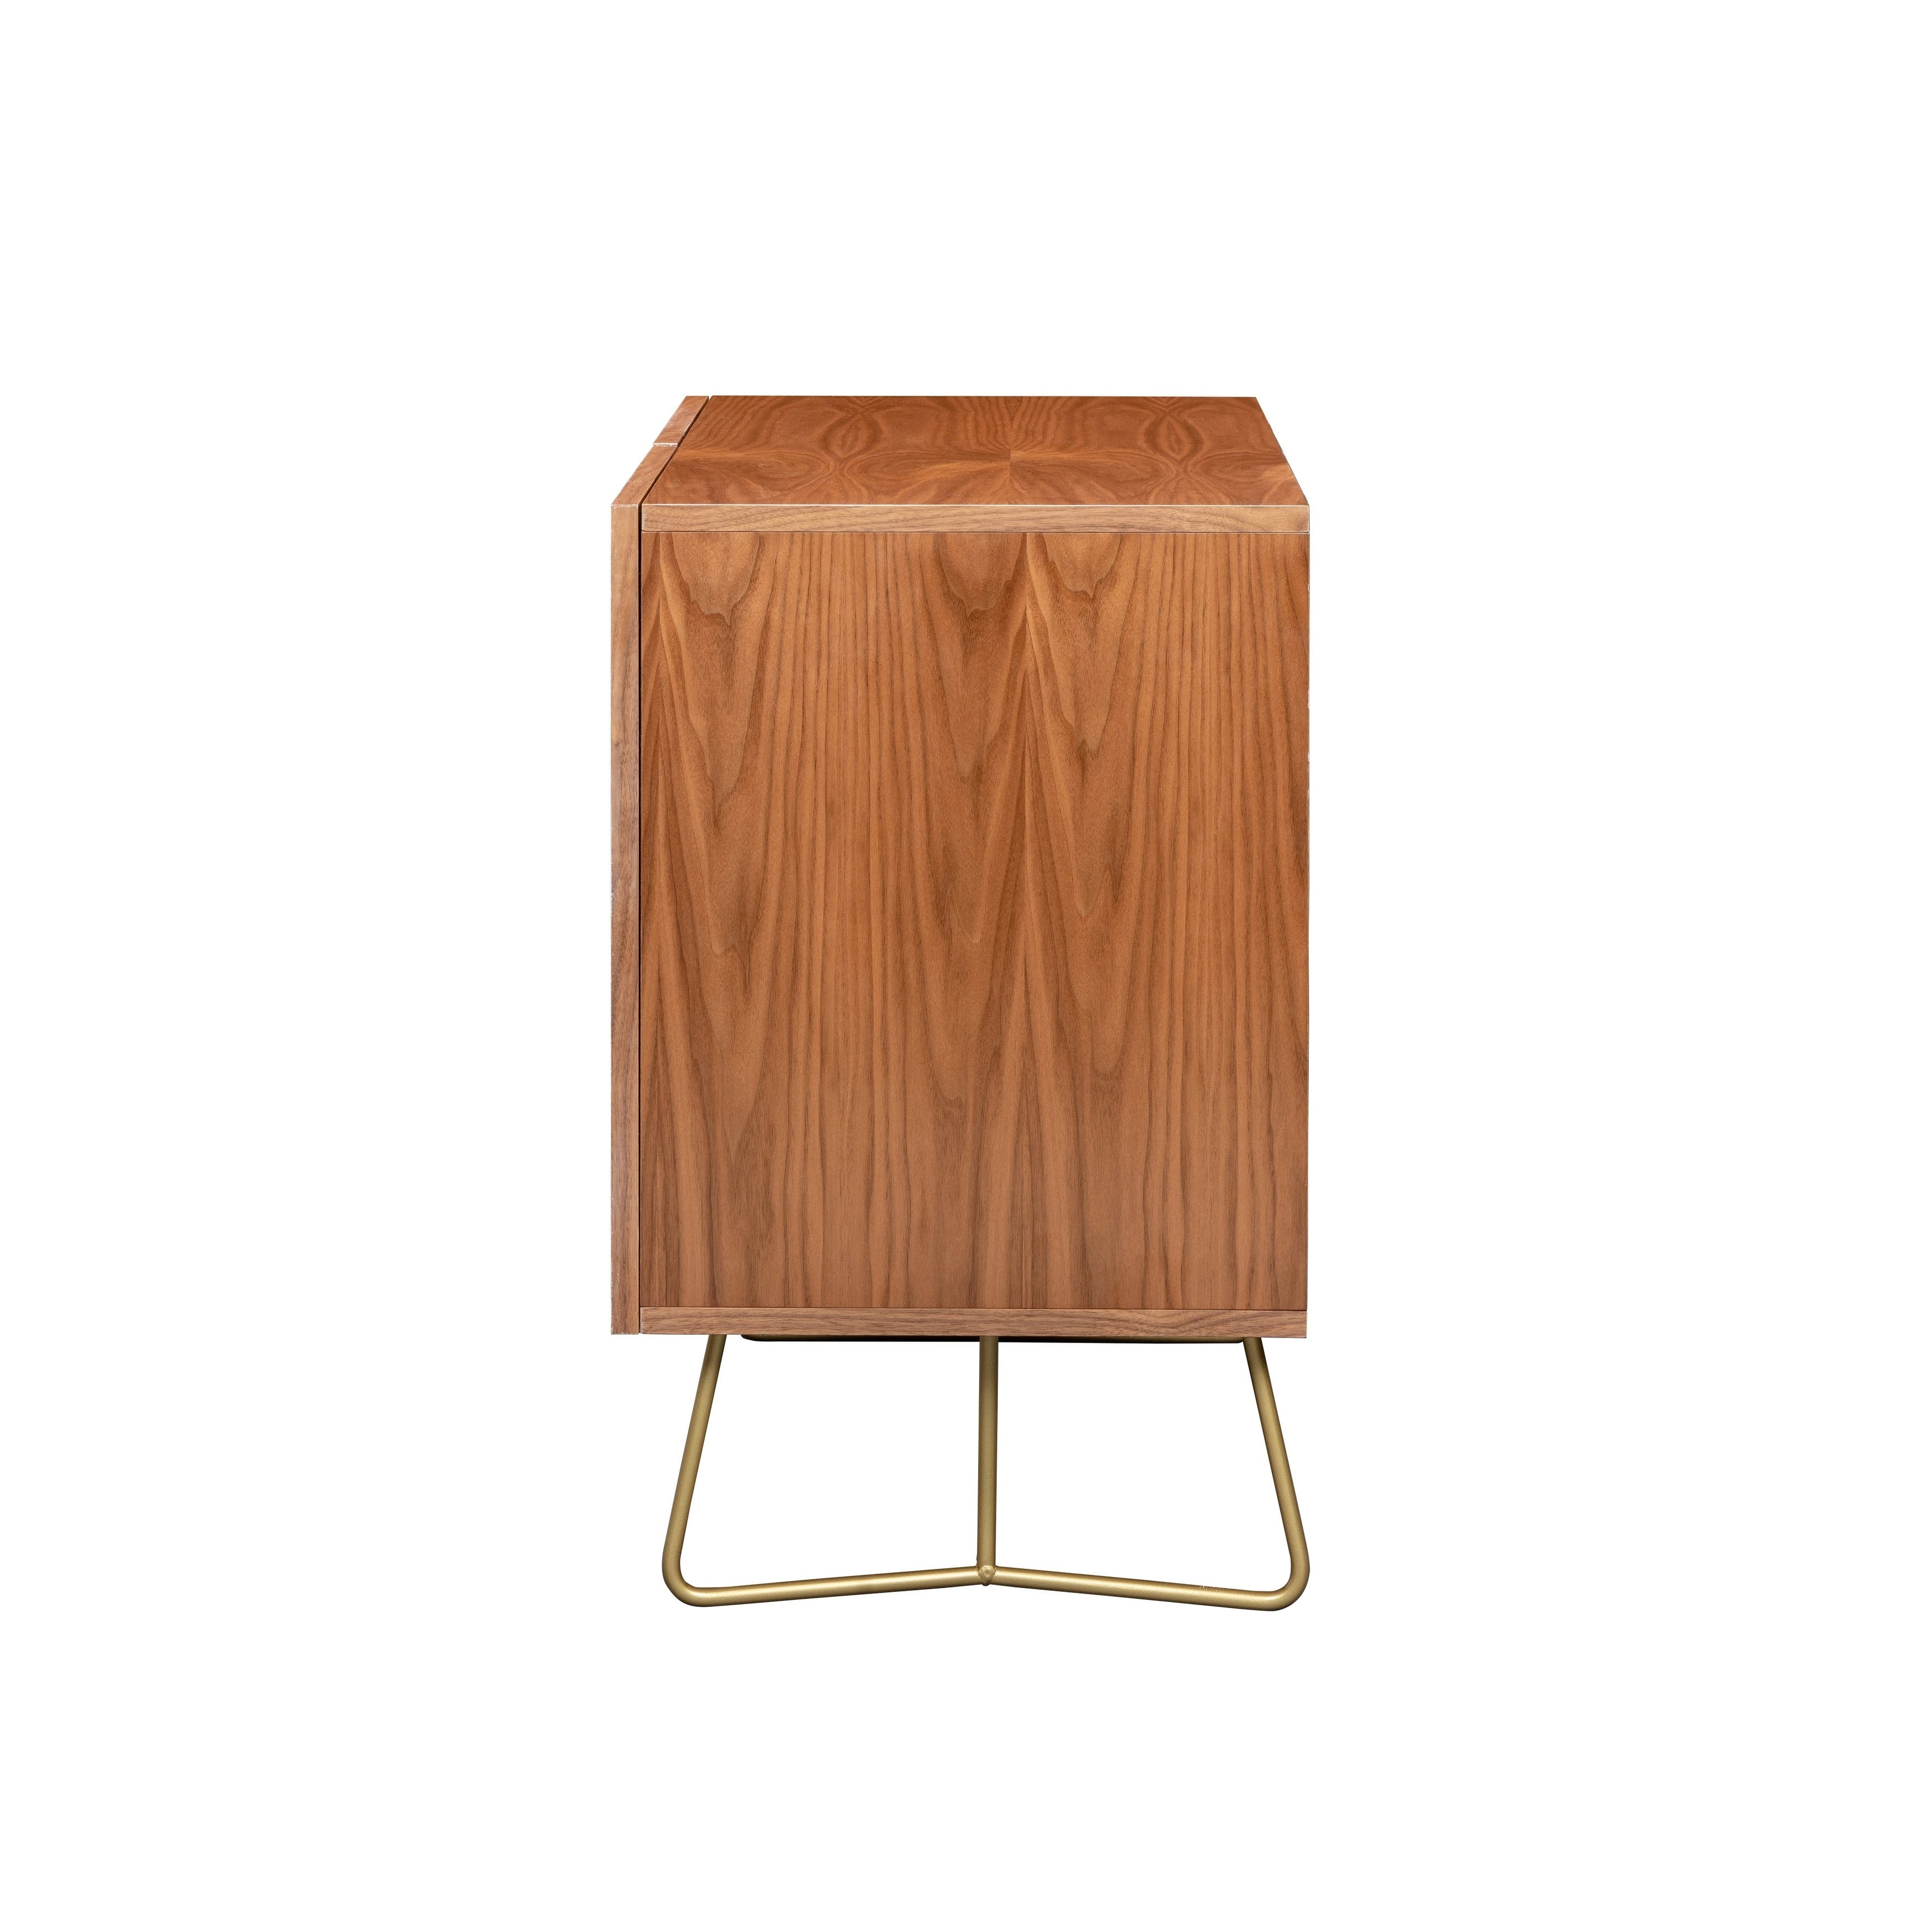 Deny Designs Neon Bloom Credenza (Birch Or Walnut, 2 Leg Options) Pertaining To Neon Bloom Credenzas (View 4 of 20)